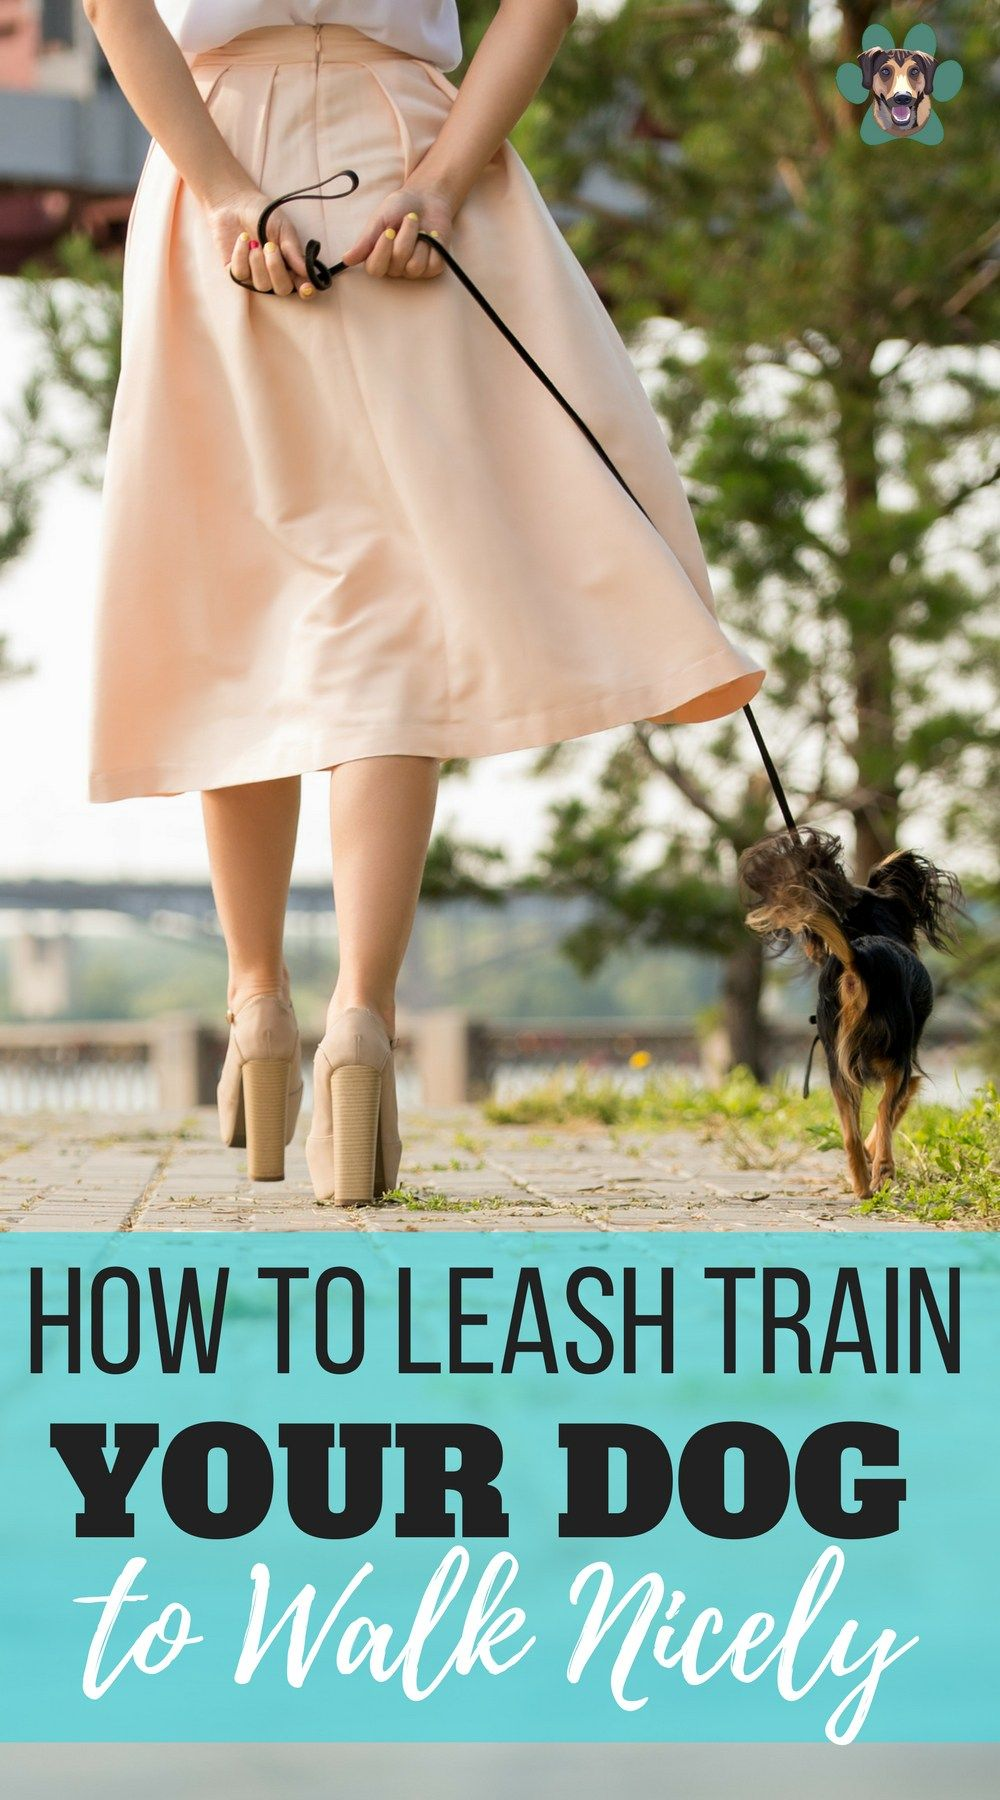 How to train a dog to heel and walk nicely on a leash